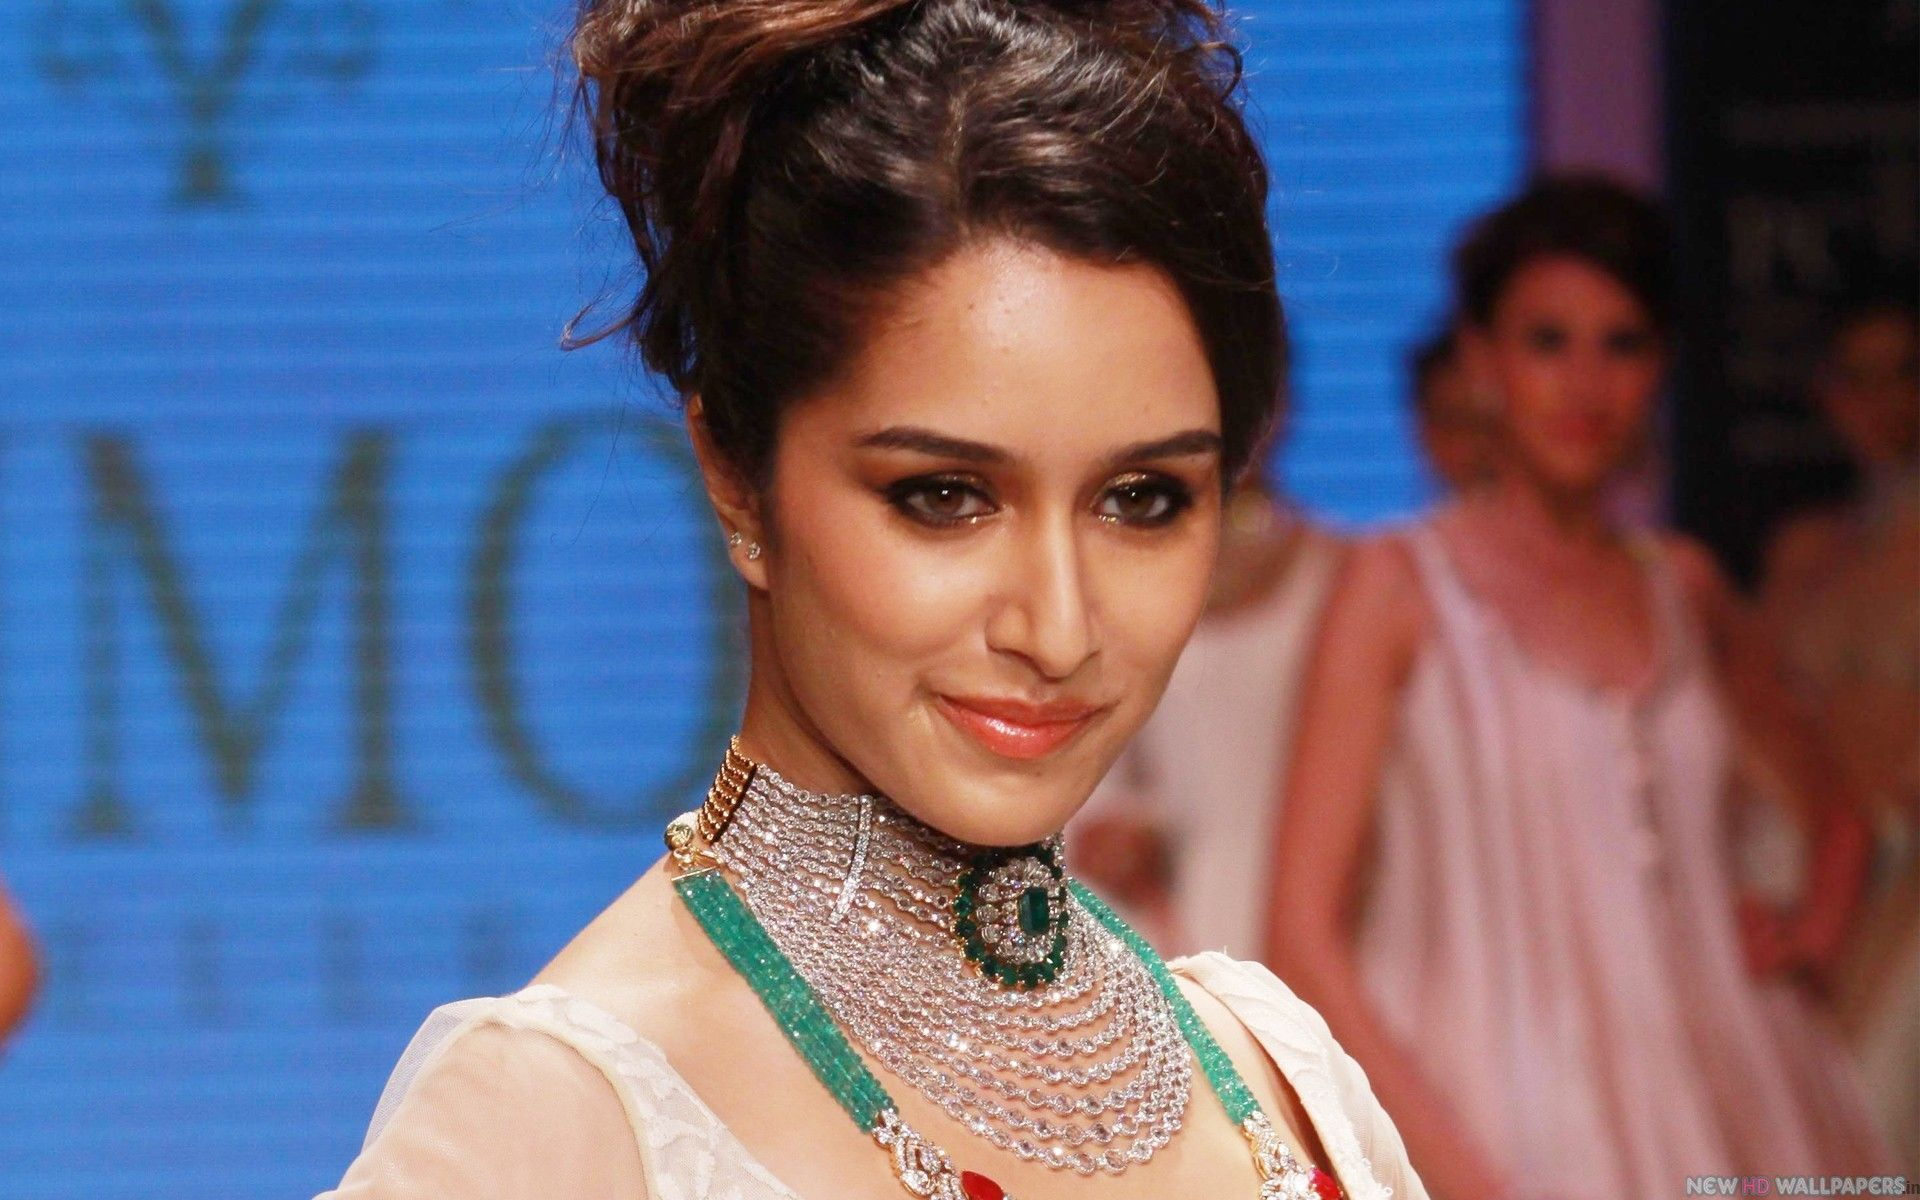 Best Shraddha Kapoor Wallpapers and Pics 980×1014 Image Of